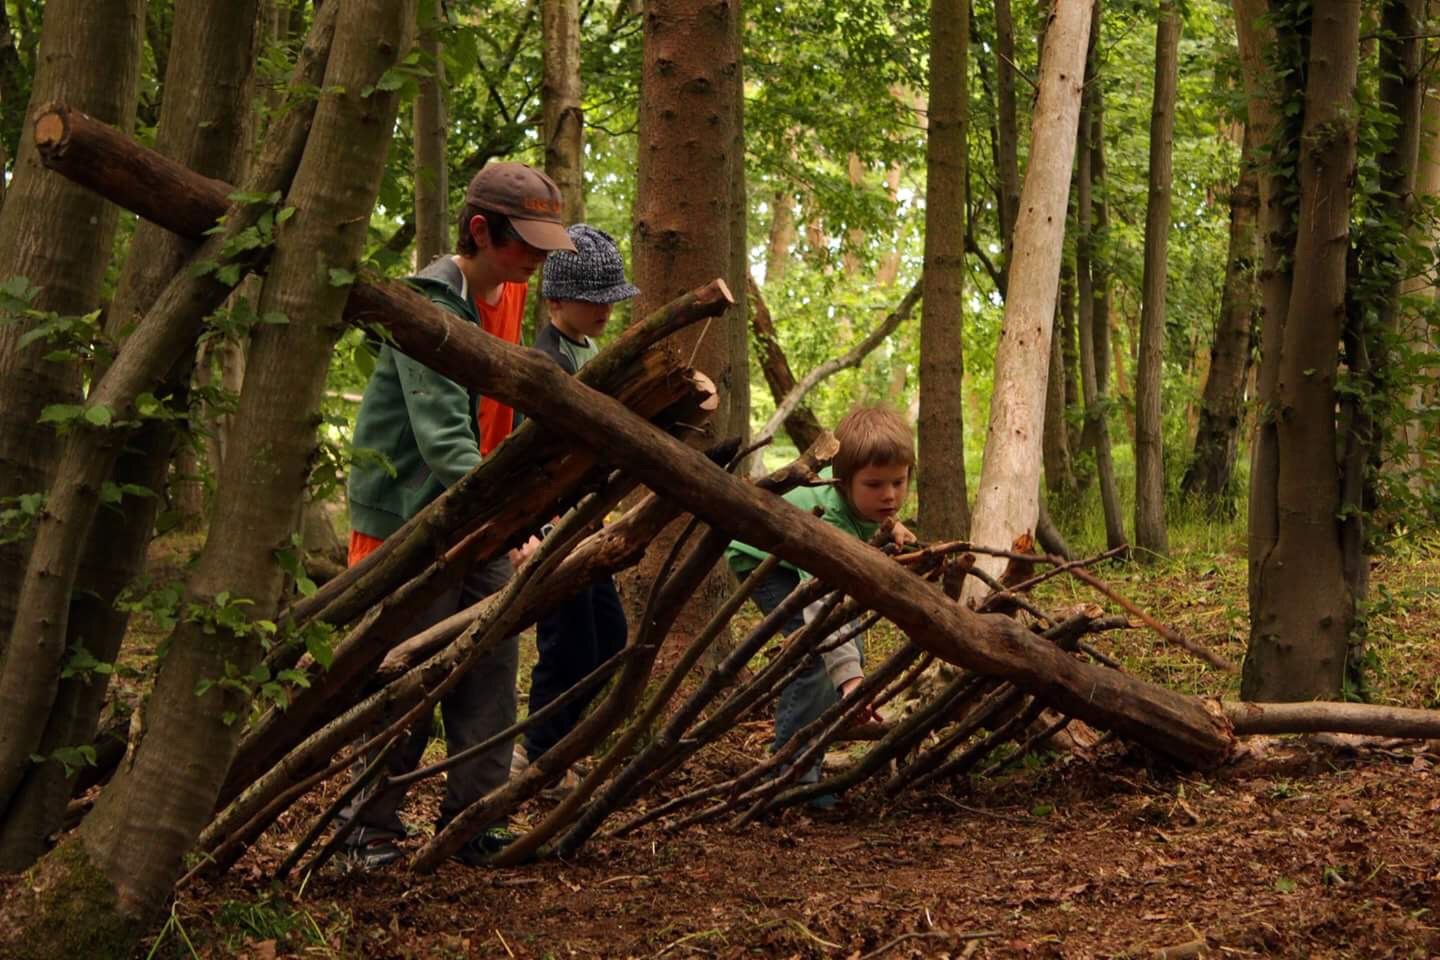 Young students and people making a lean to shelter in the woods